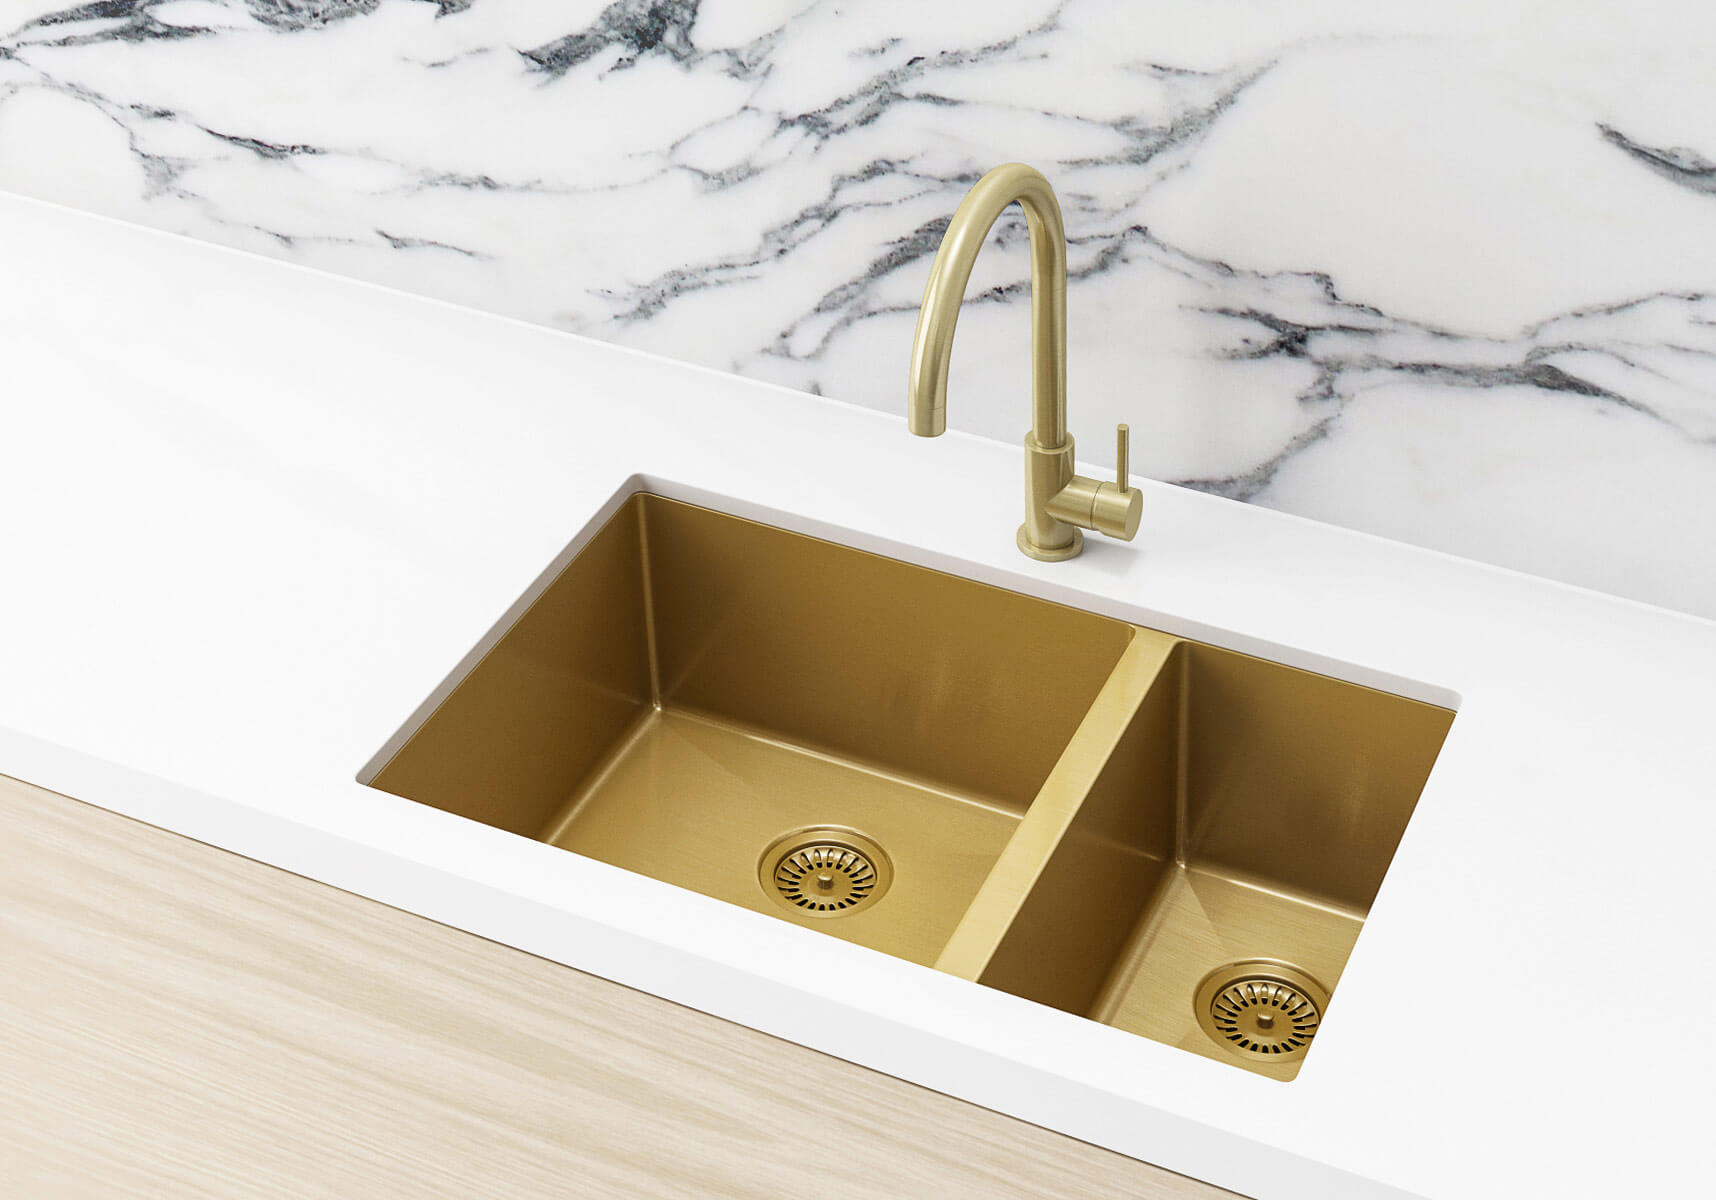 One And Half Bowl Kitchen Sink In Brushed Bronze Gold By Meir